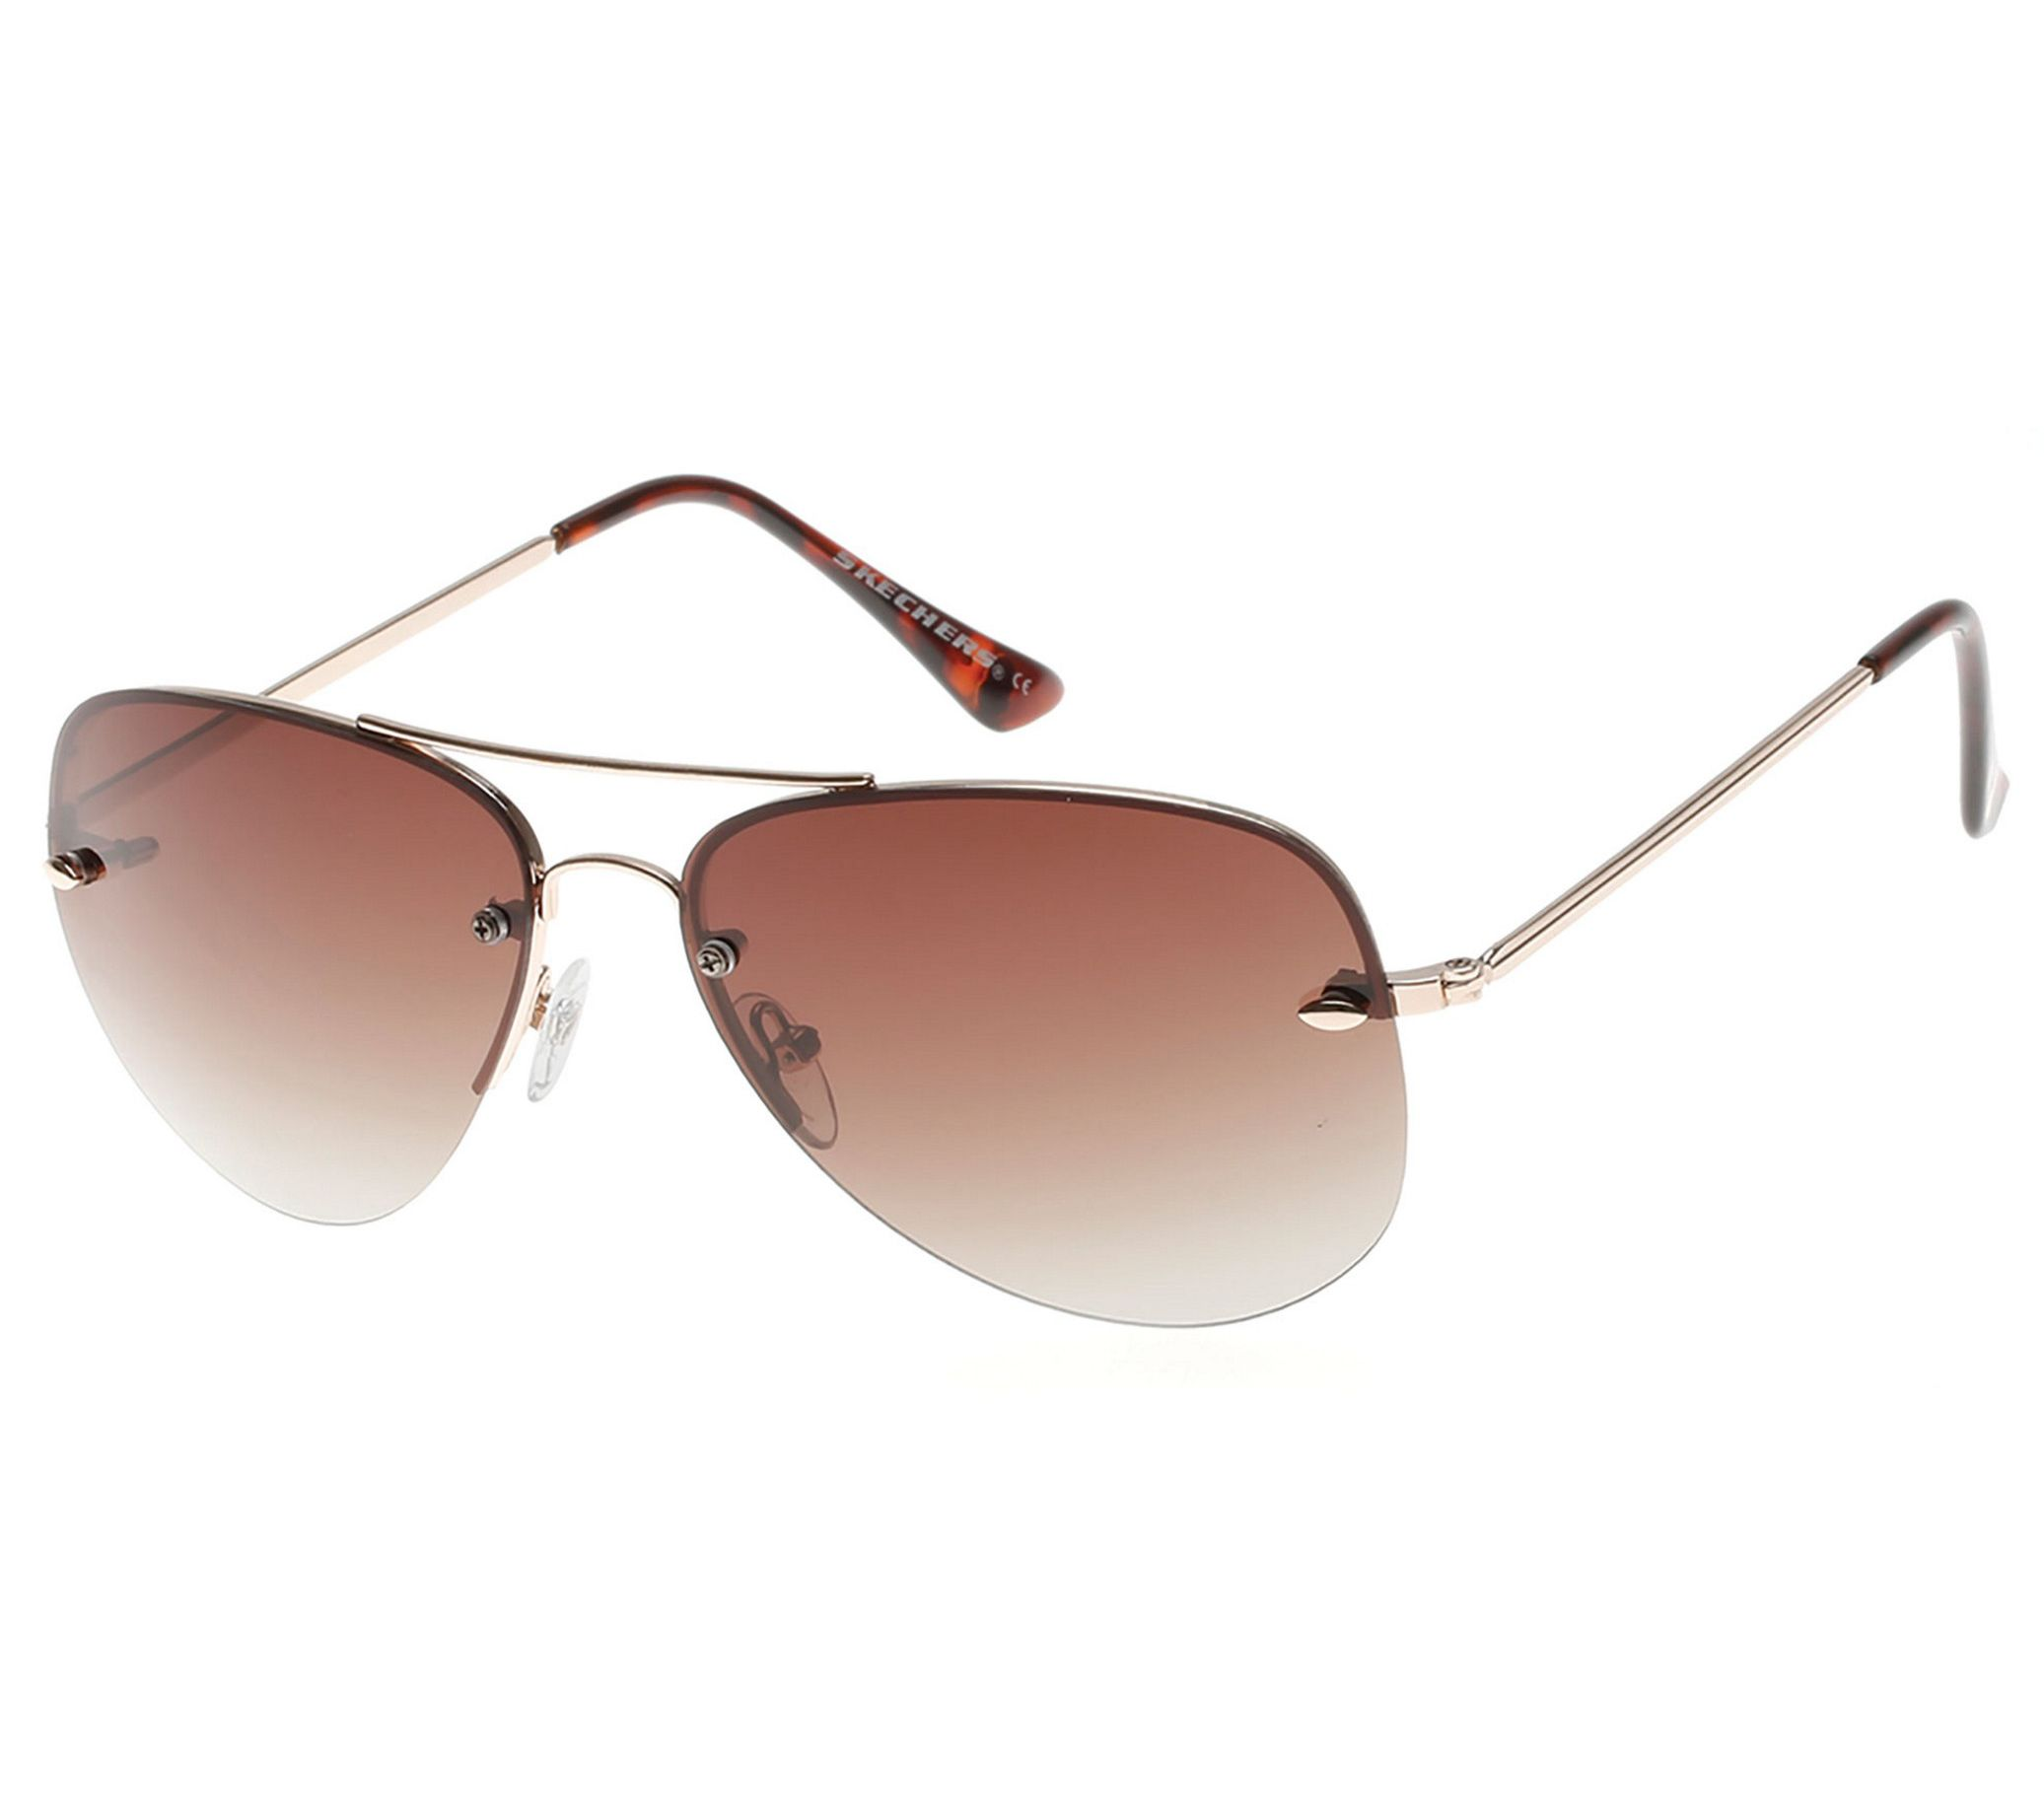 Skechers Women s Polarized Aviator Sunglasses - Page 1 — QVC.com 950a5e990e0